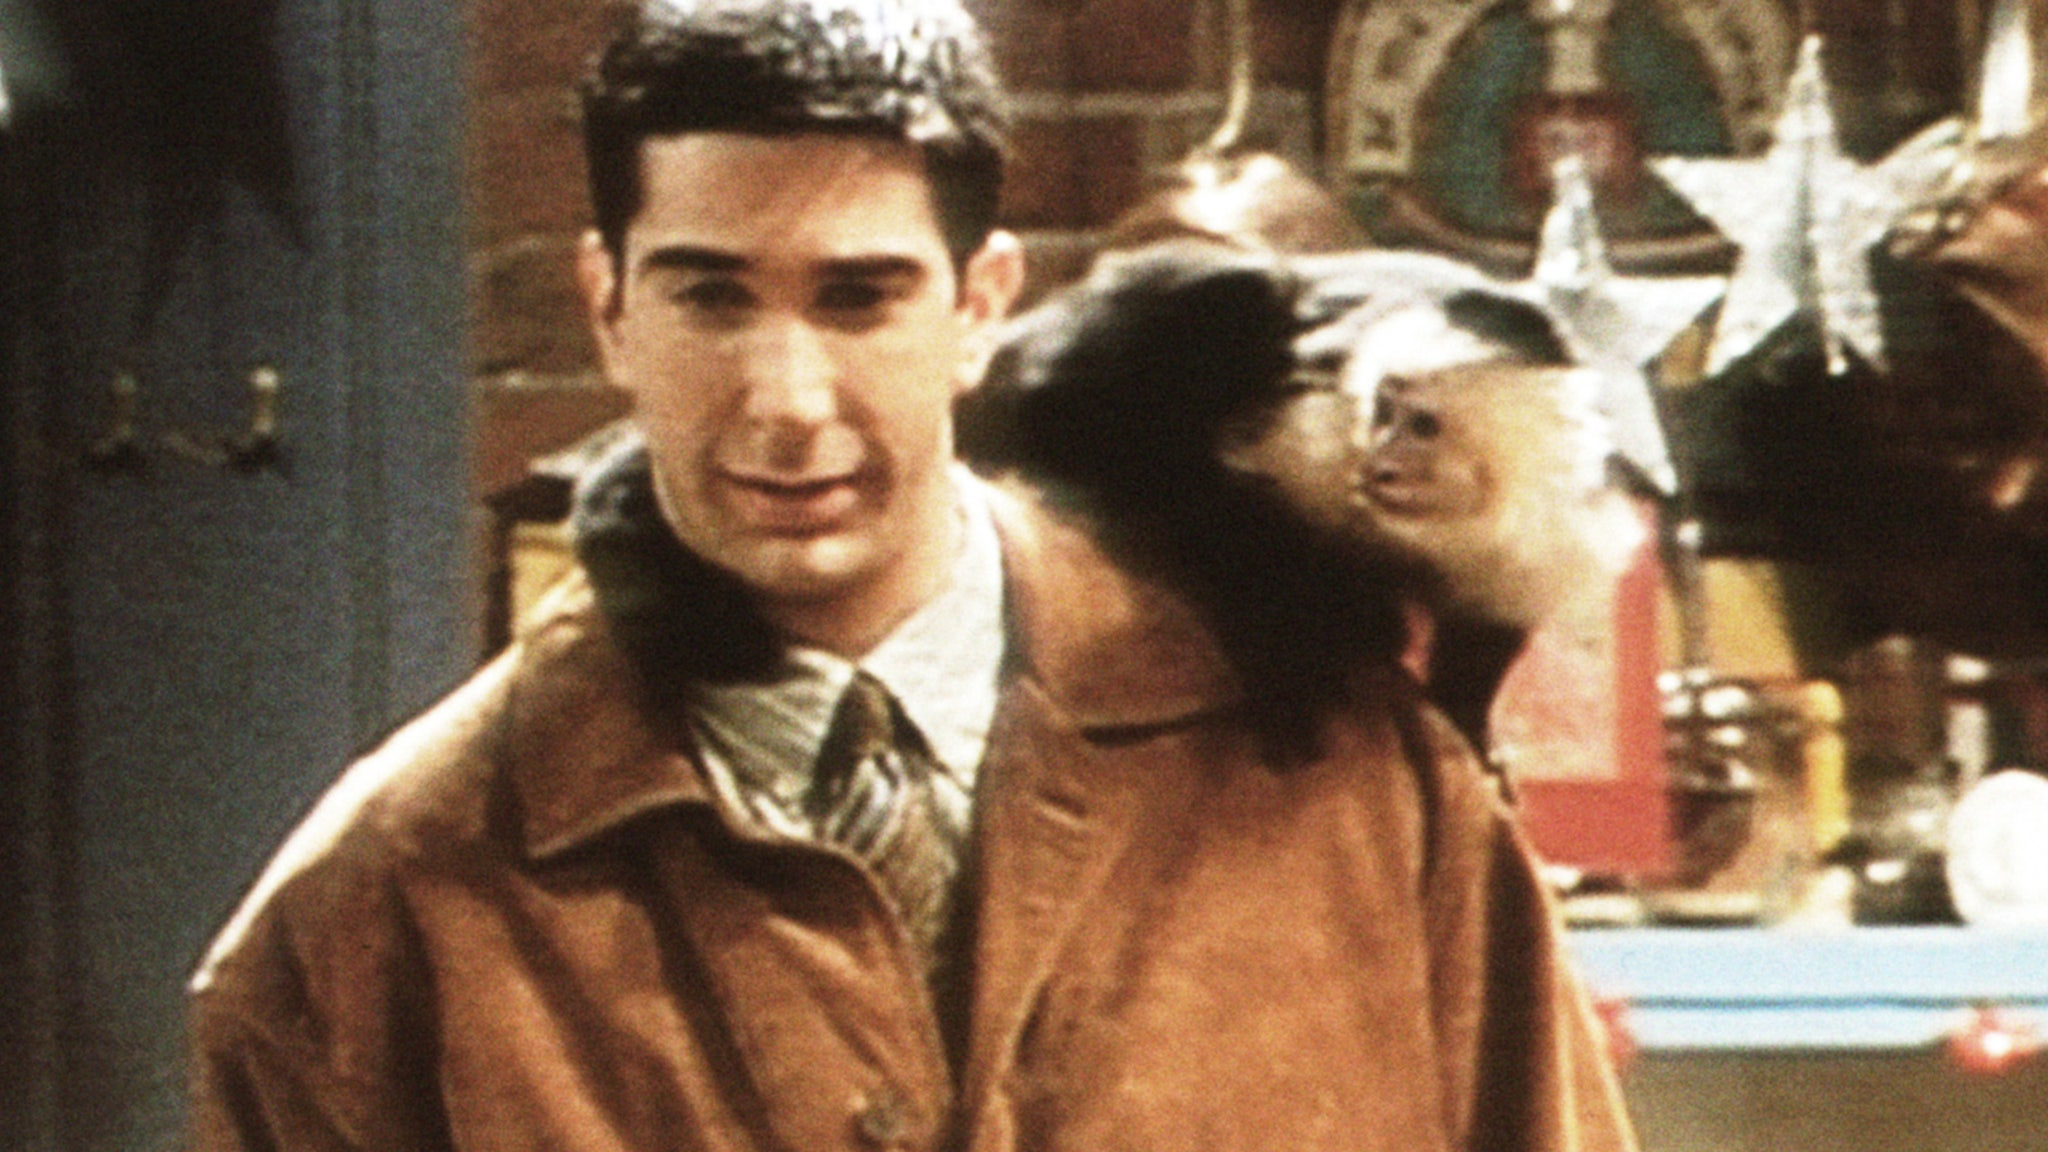 David Schwimmer 'Jealous' of Marcel, says he's friends with Monkey Trainer